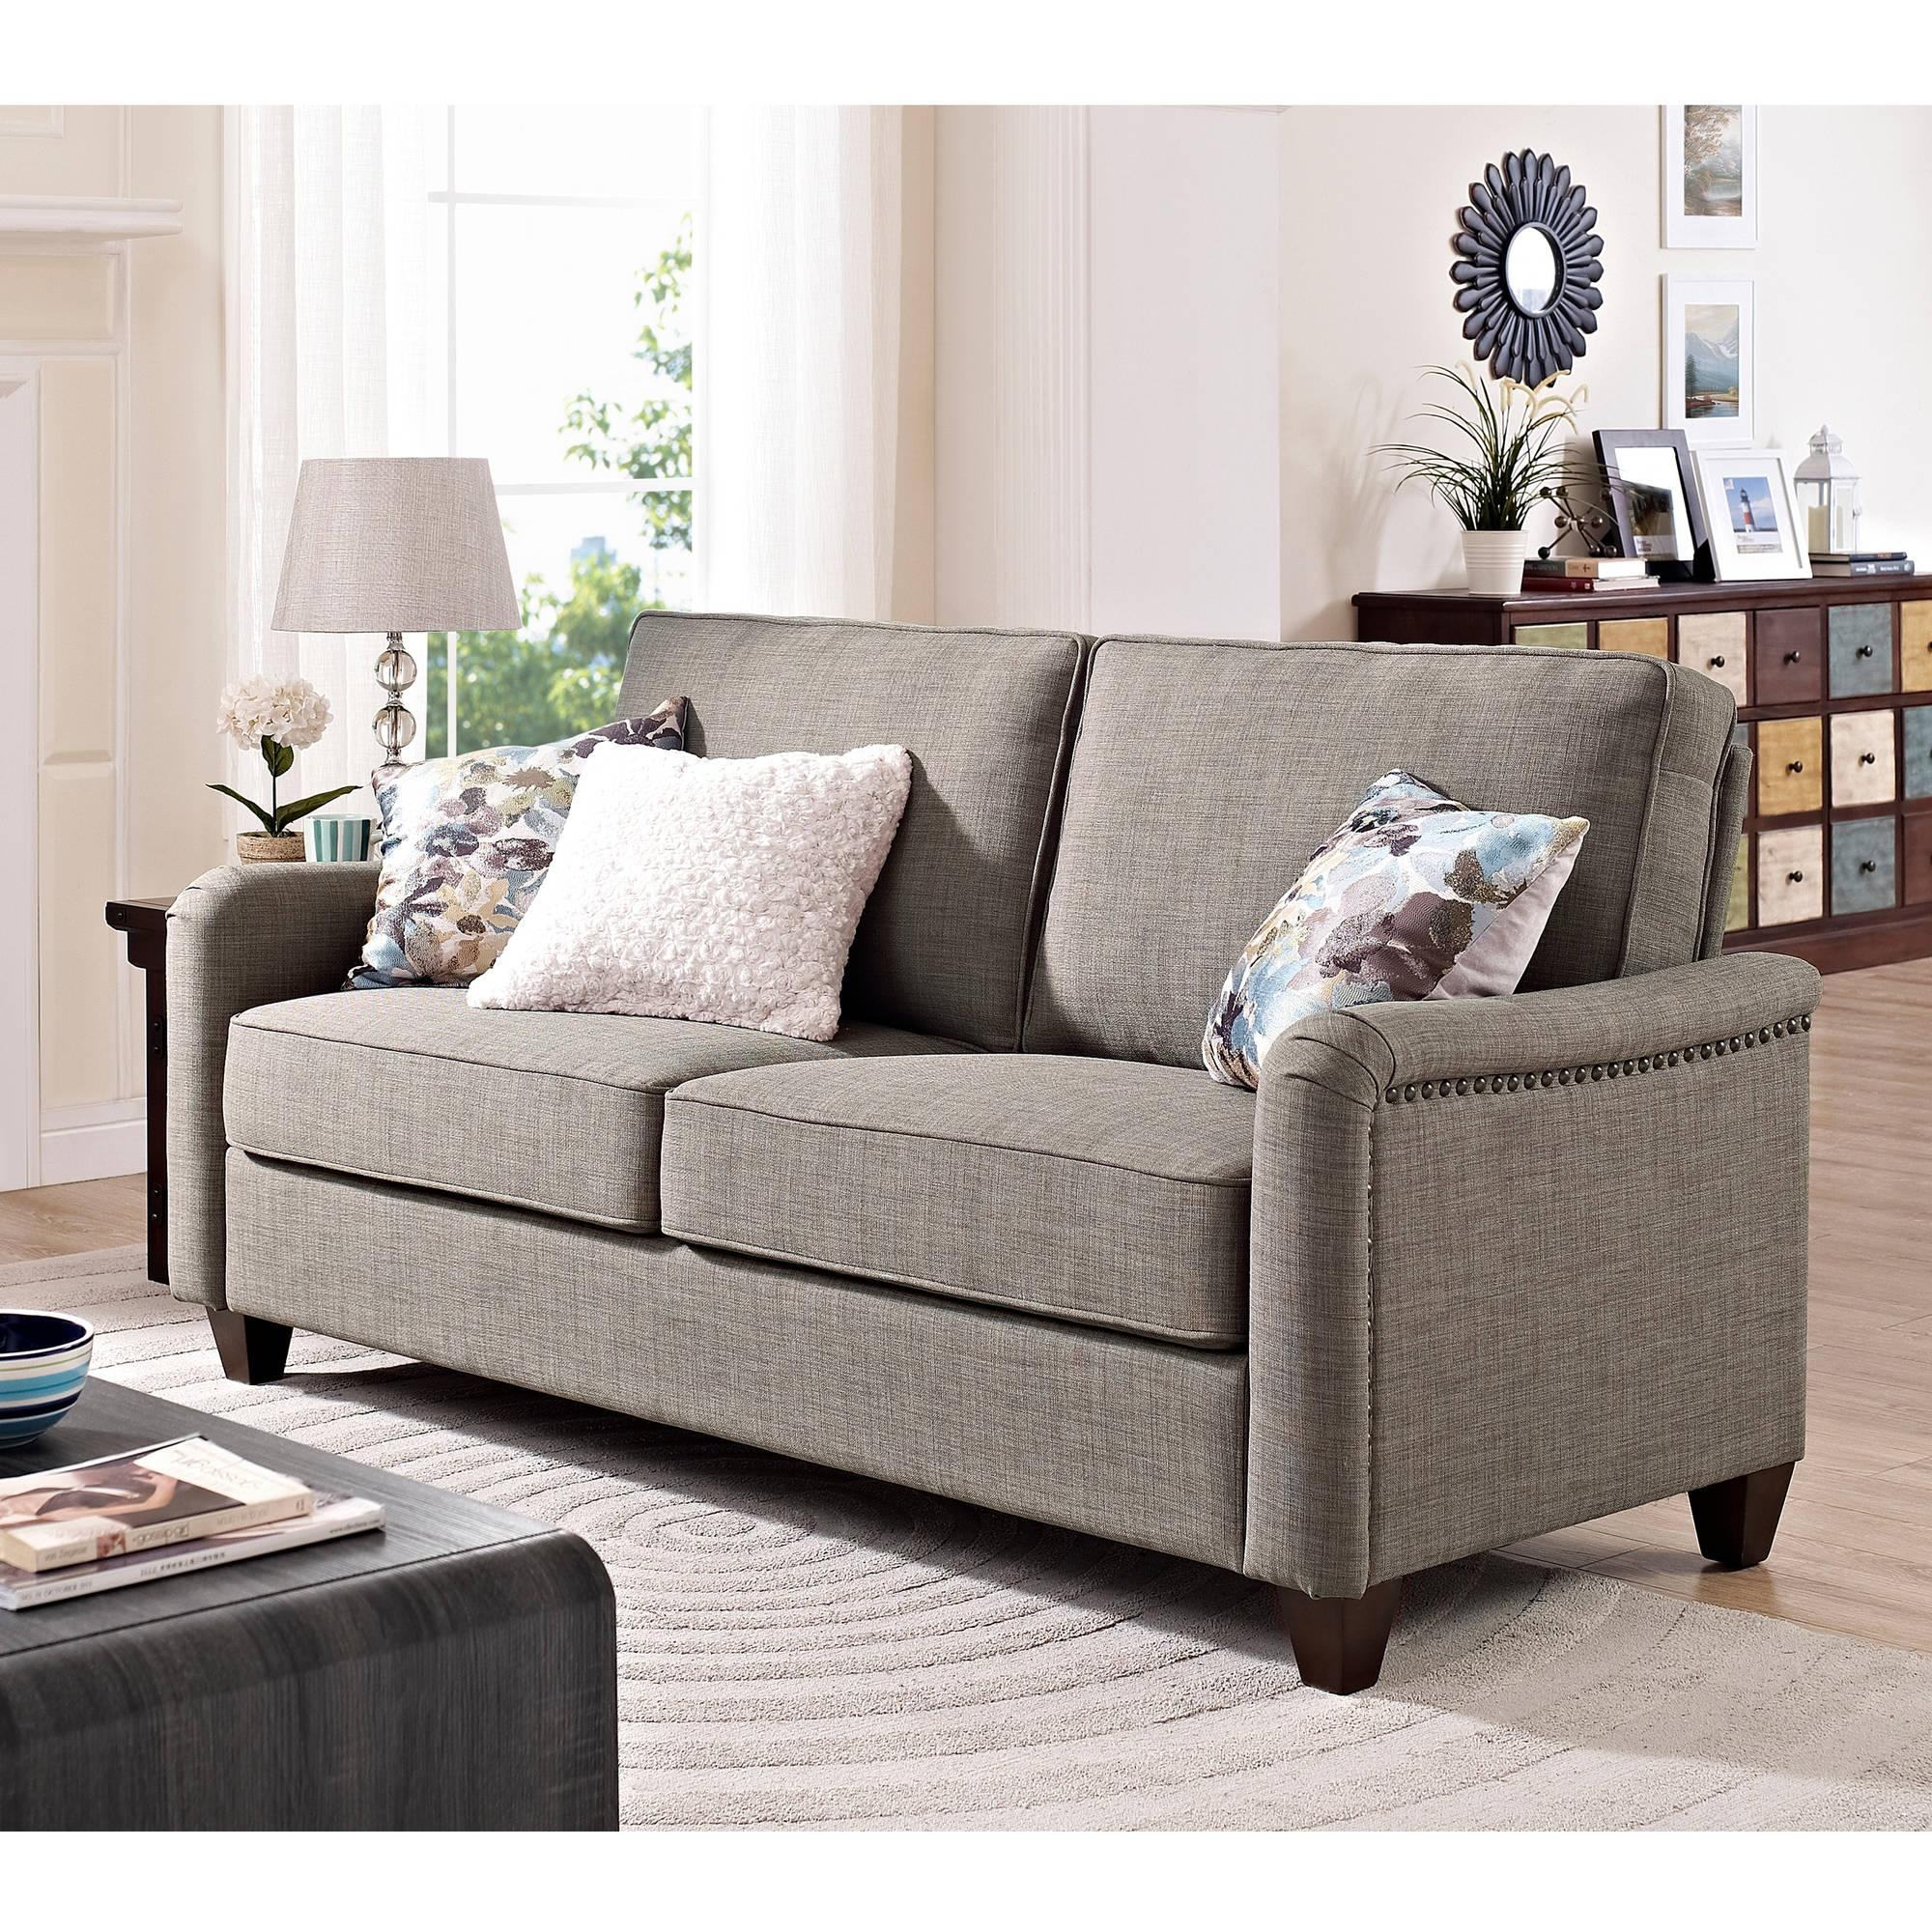 Better Homes And Gardens Grayson Sofa With Nailheads, Grey Within Wallmart Sofa (View 15 of 20)